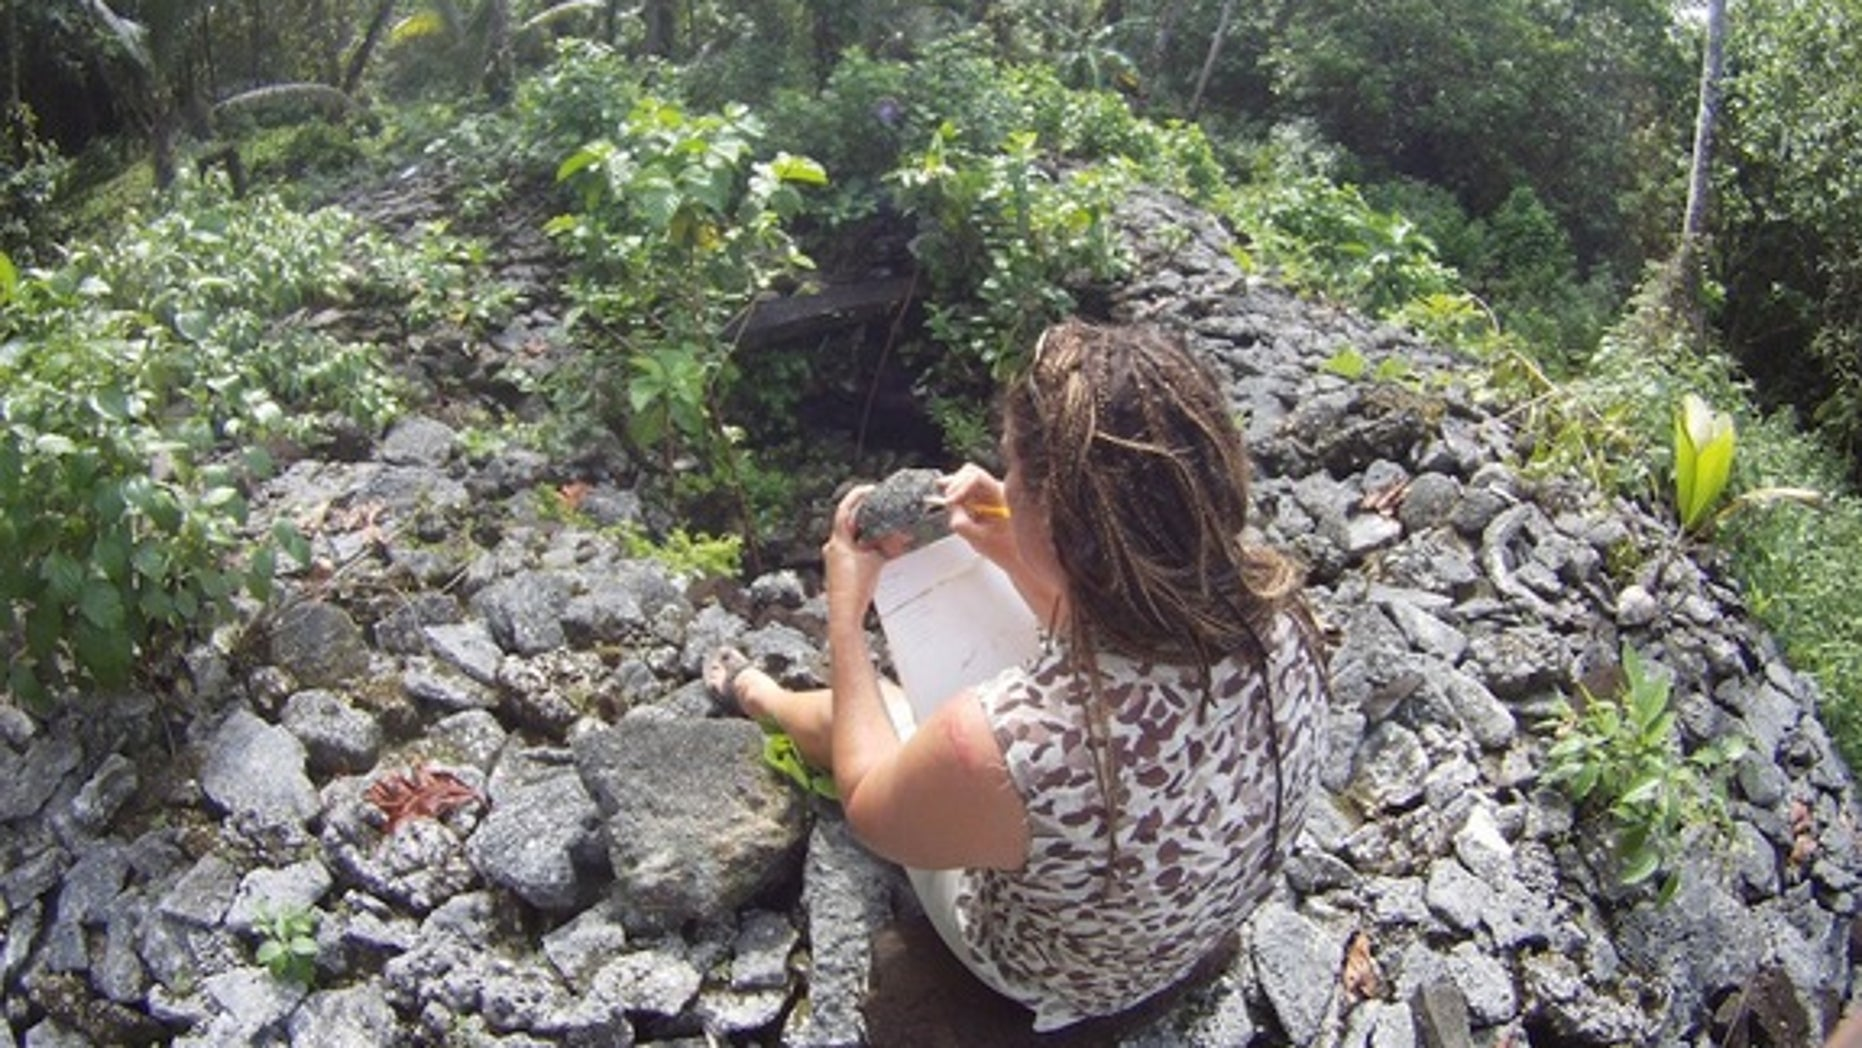 Researcher Zoe Richards inspects the corals used to build a royal tomb at Leluh known as Bat.